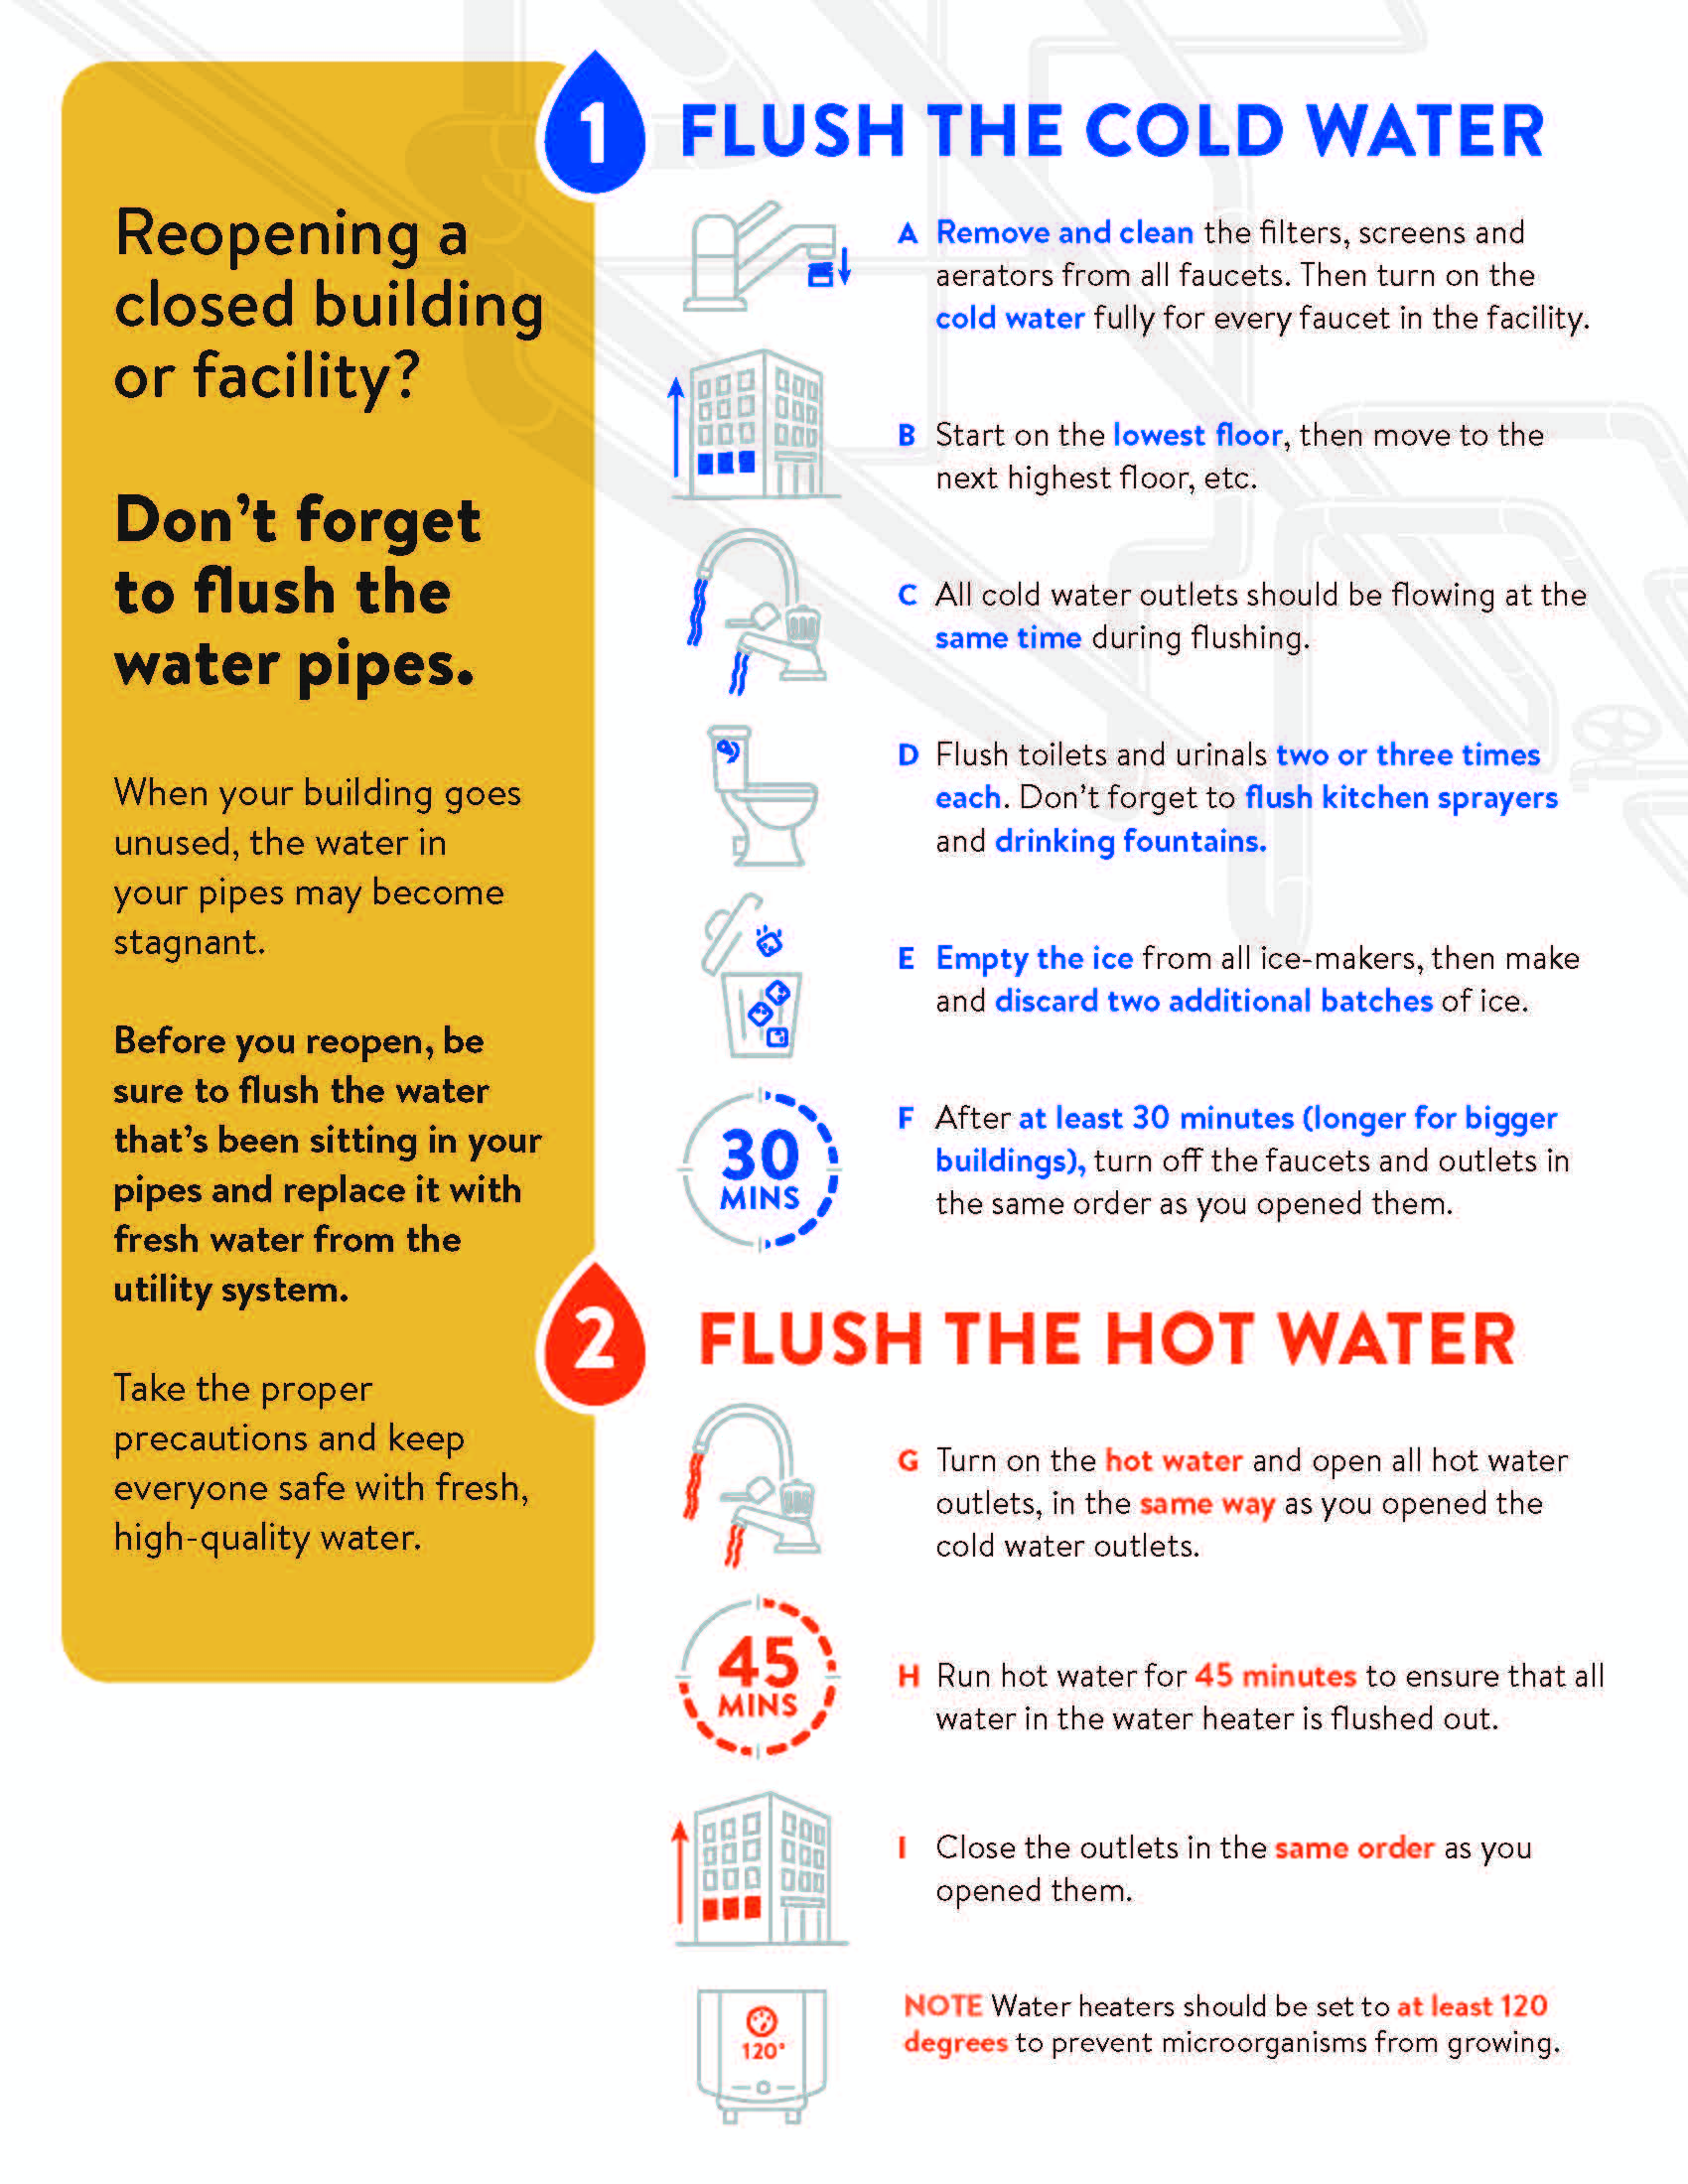 HRPDC Flush Water Instructional InfoGraph